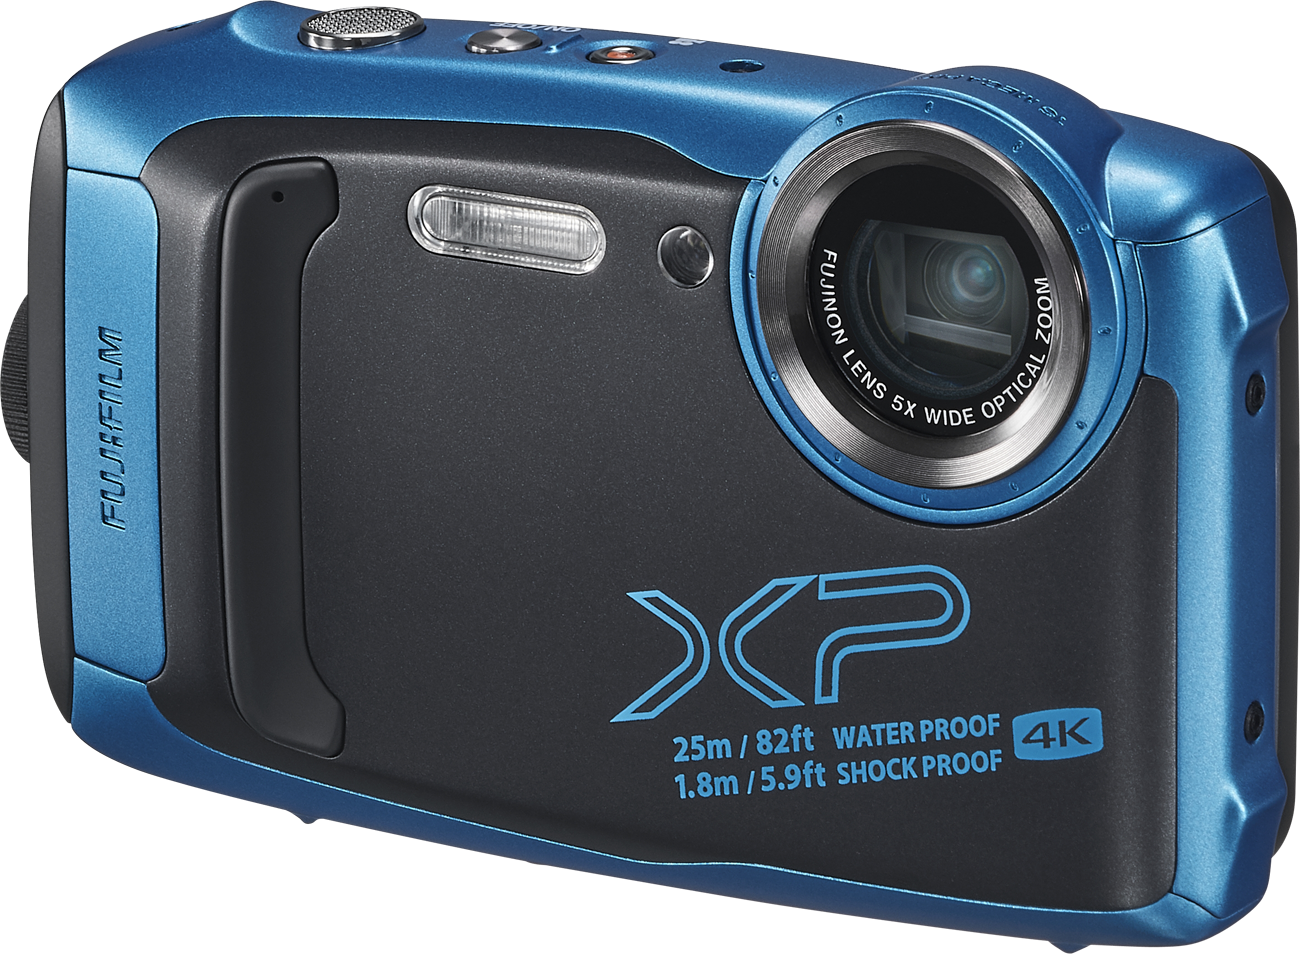 Fujifilm FinePix XP140: Digital Photography Review